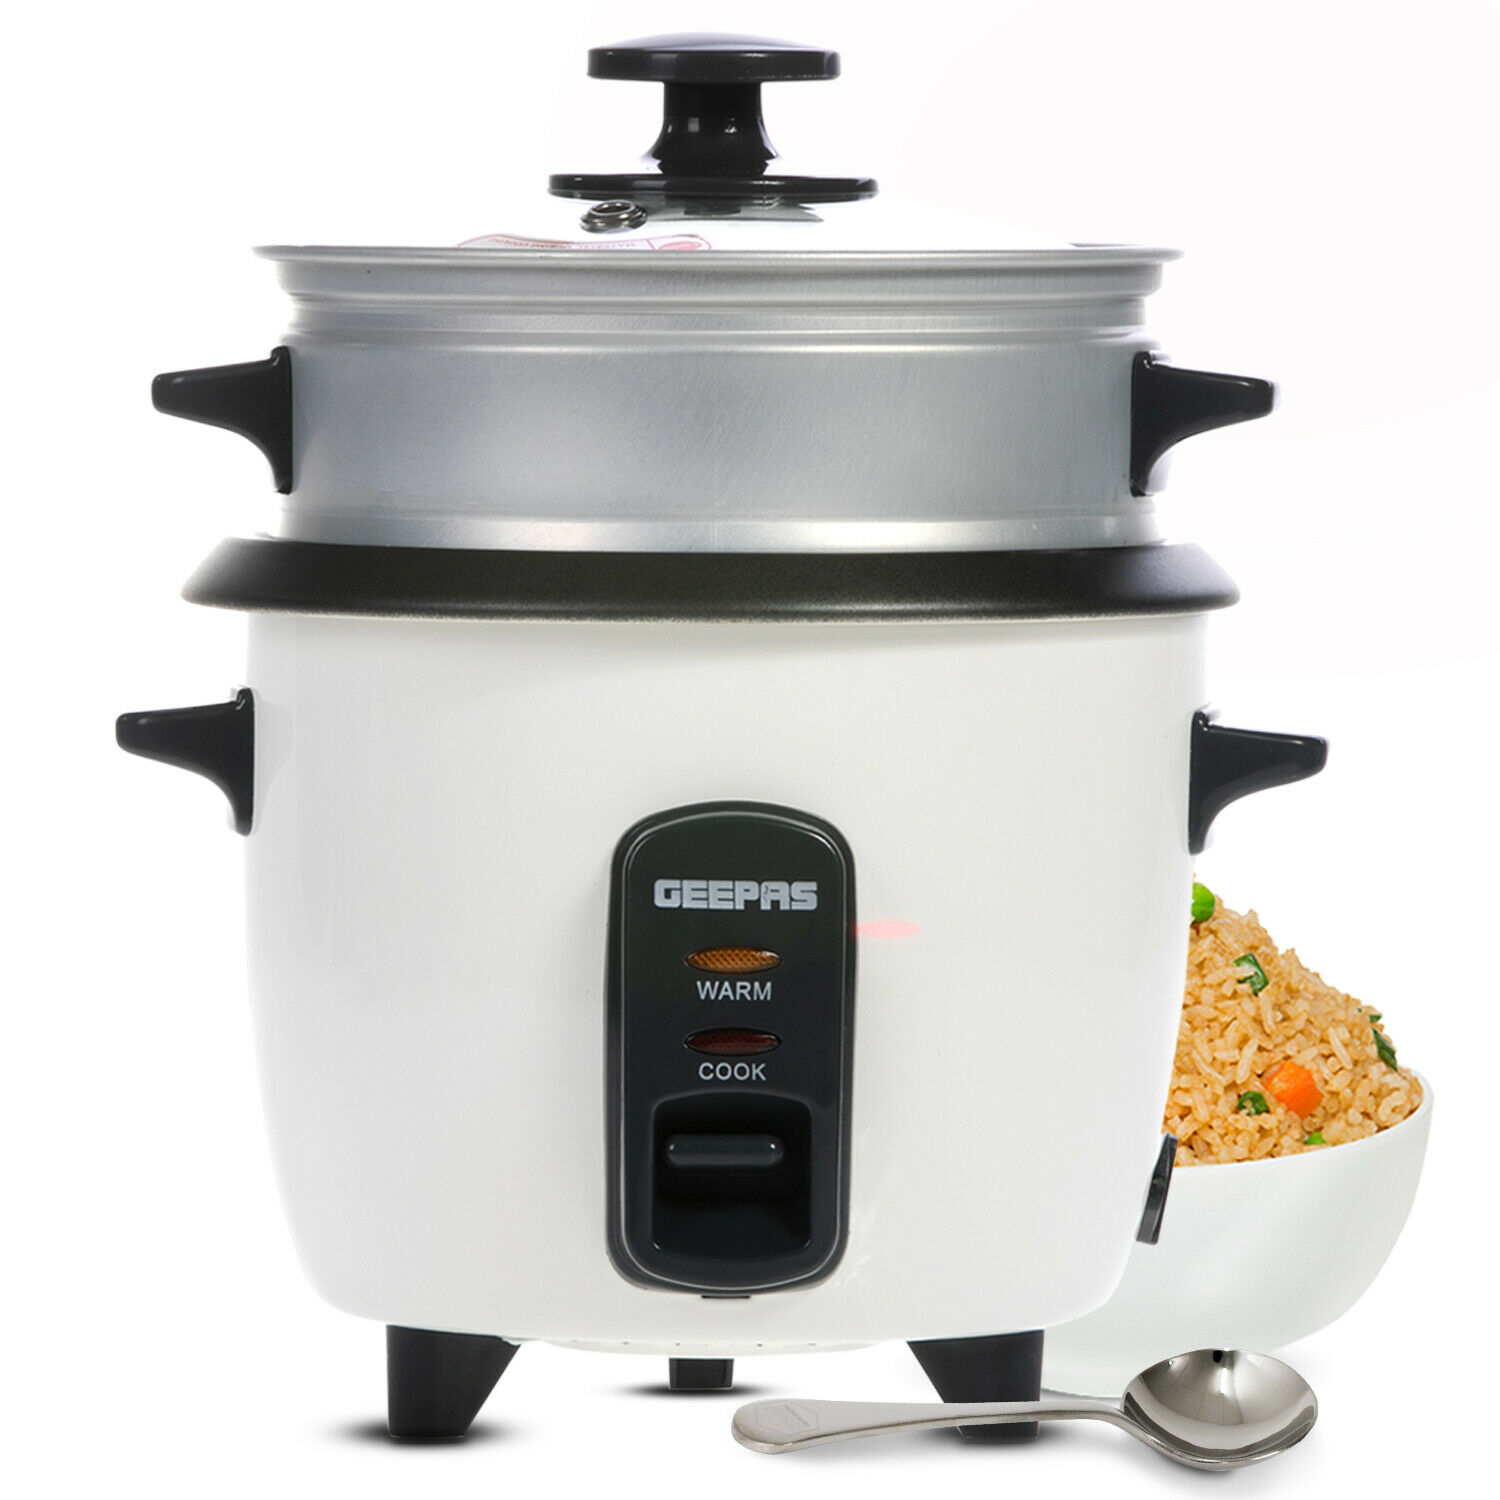 268412fbdd2 Details about Geepas Rice Cooker 0.6L Steamer Cooking Pot Non Stick  Electric 350W Keep Warm